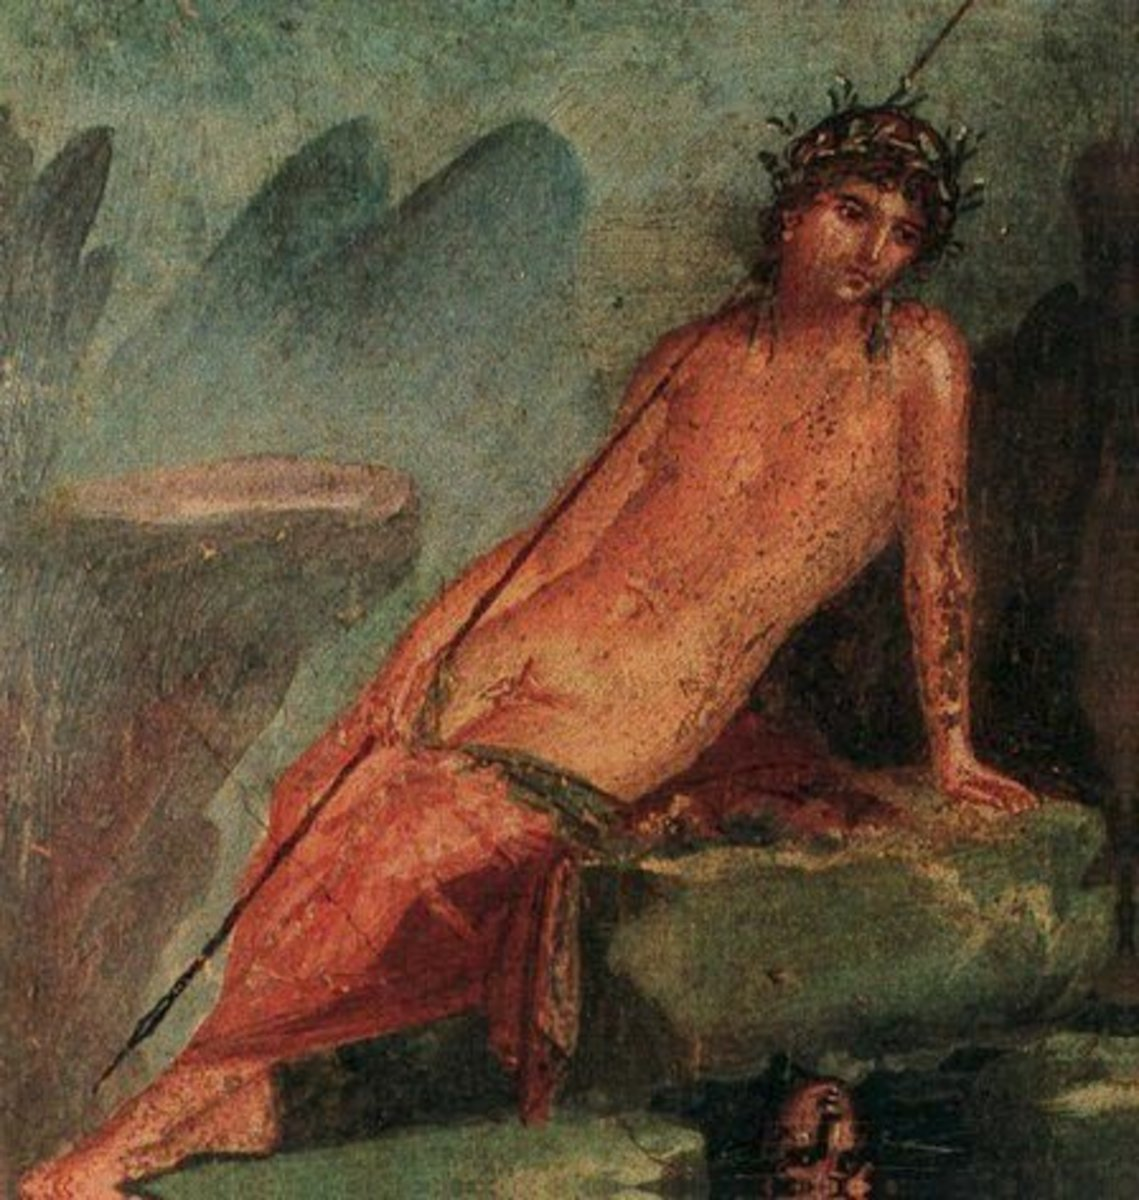 Narcissus was so entranced with himself he wasted his life. Do you love someone like Narcissus?